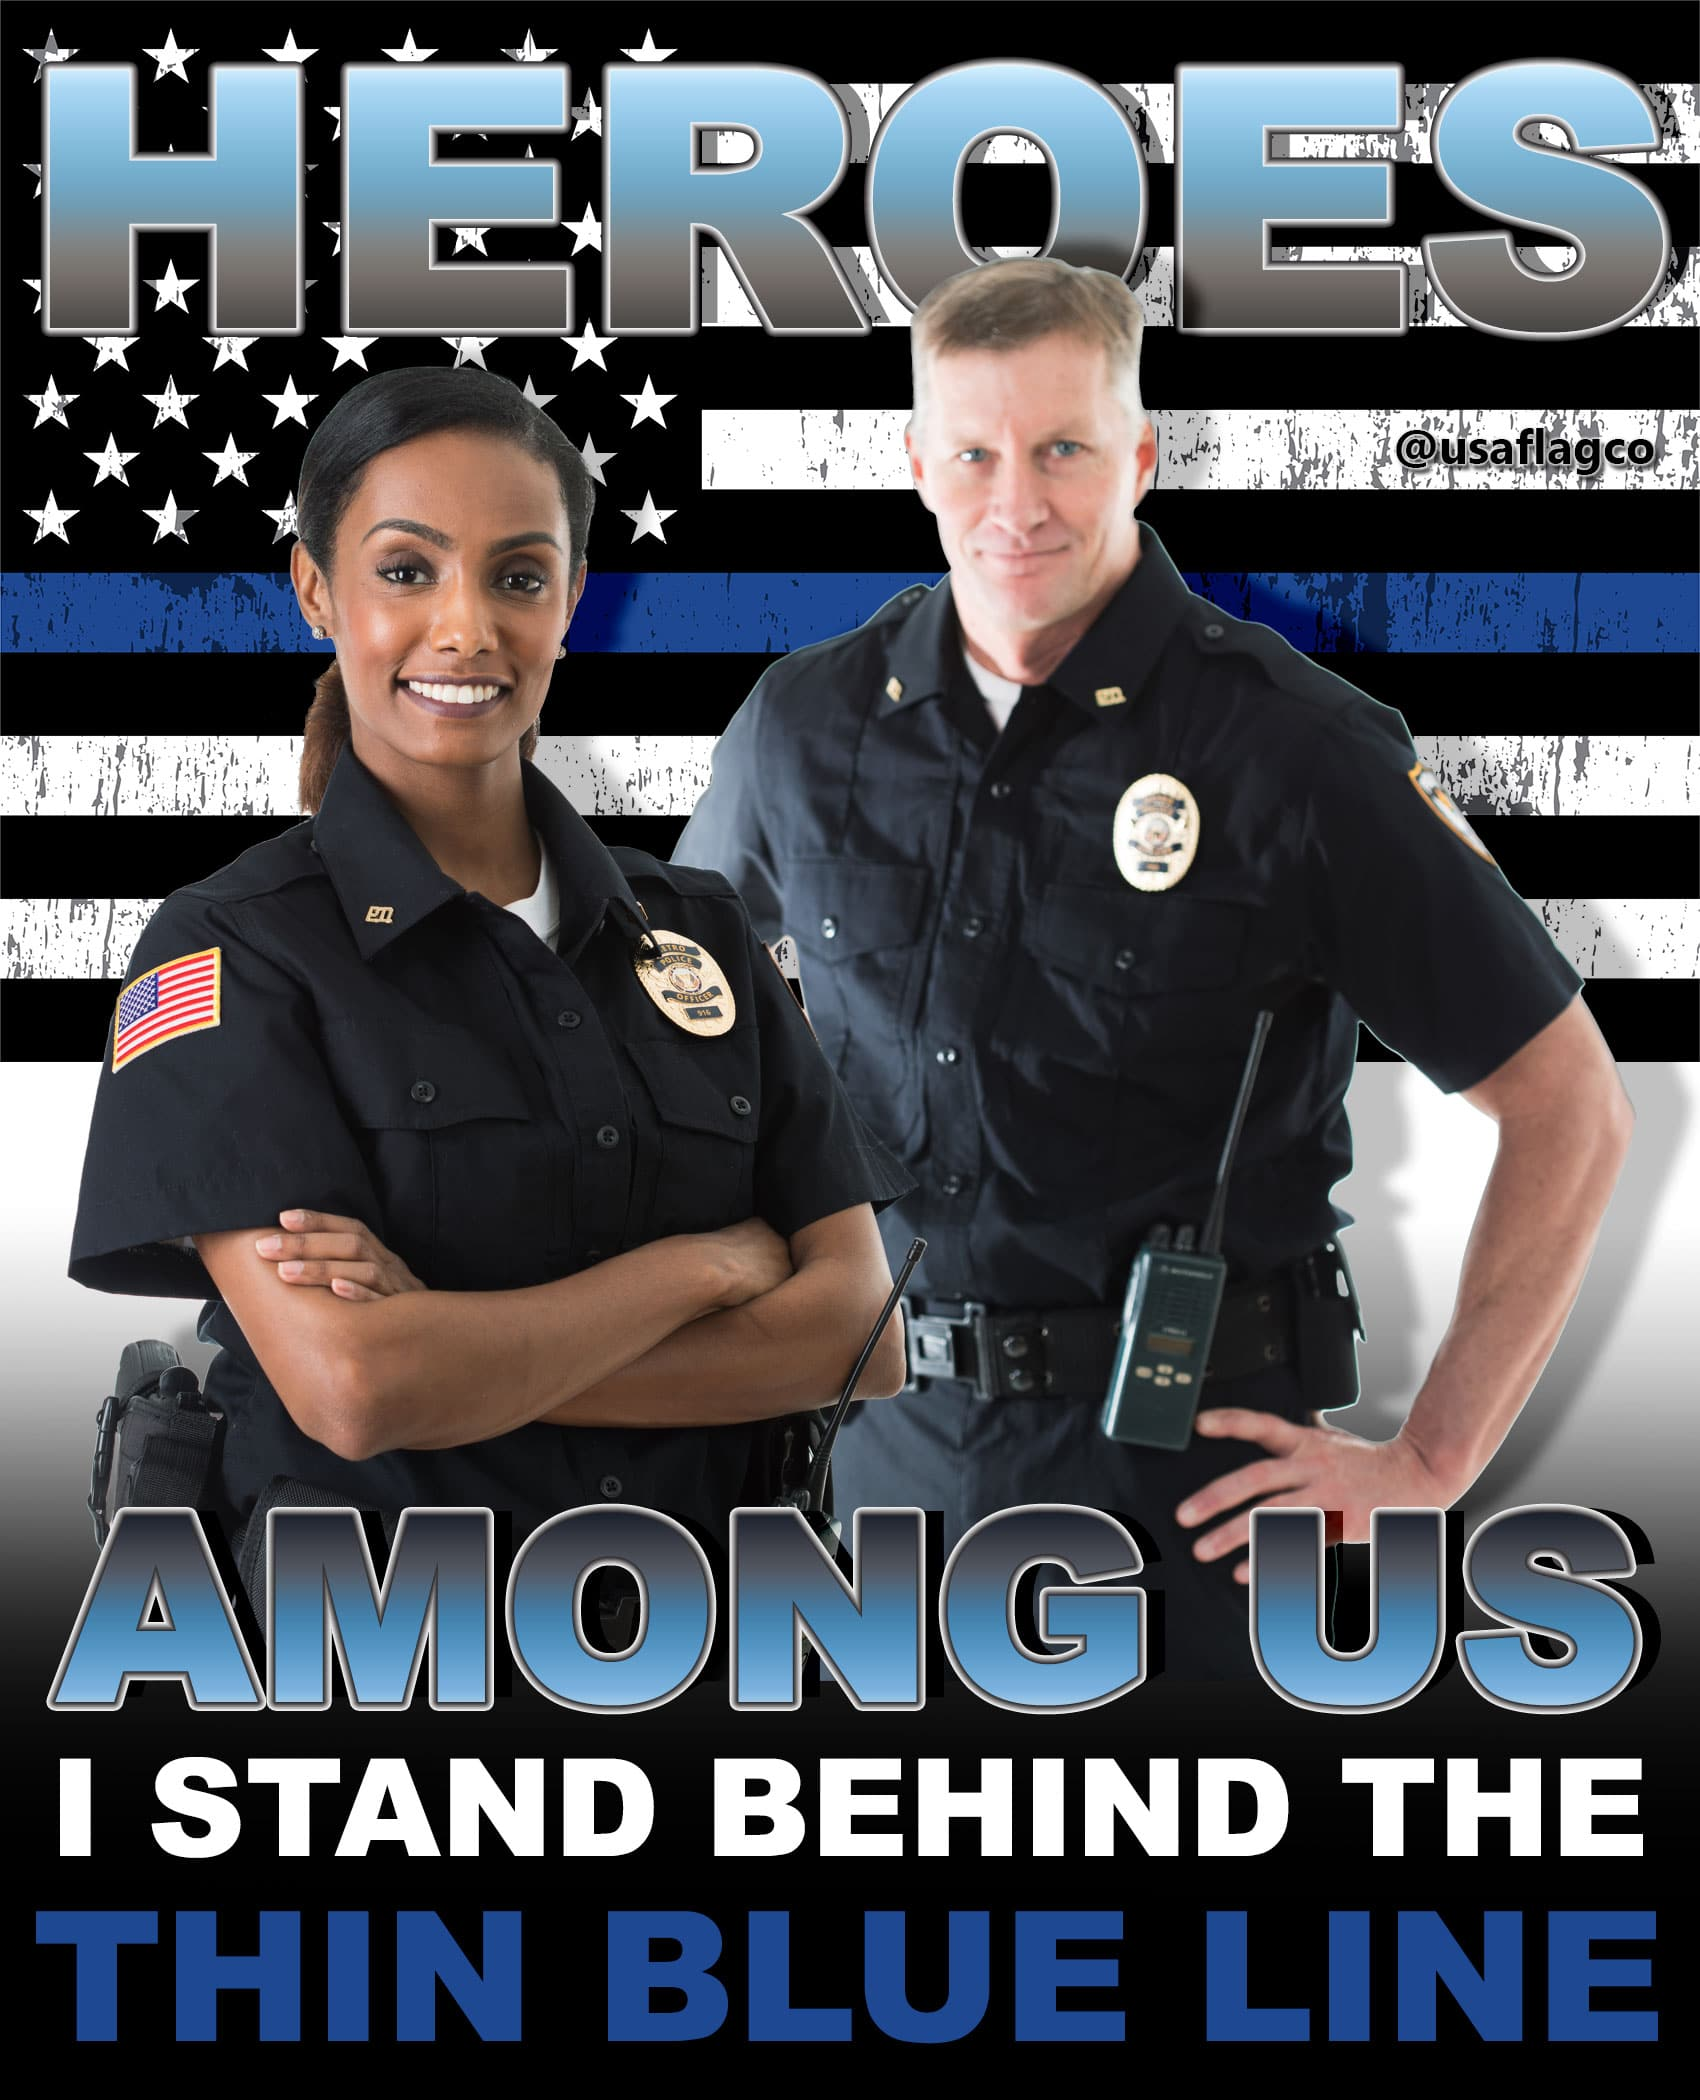 Protector, Savior, Counselor, Parent, Guardian, Life-Saver, Diplomat, Minister, Social Worker, Compassionate, Tolerant, Fearless, Courageous, Honorable & Selfless. WE ARE THE THIN BLUE LINE... EVERYDAY HERO!